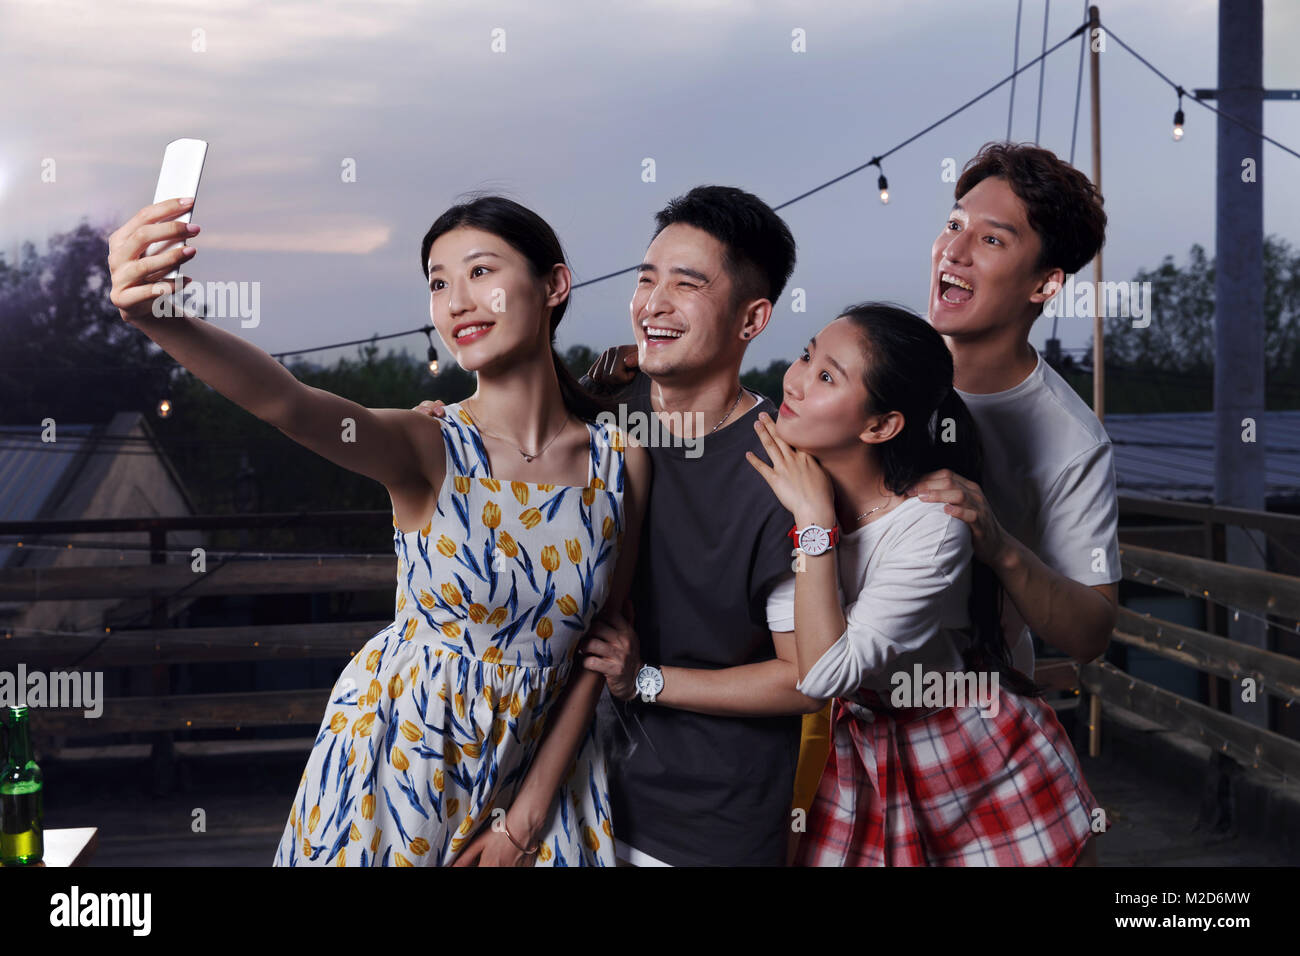 Young people take pictures with their cell phones - Stock Image